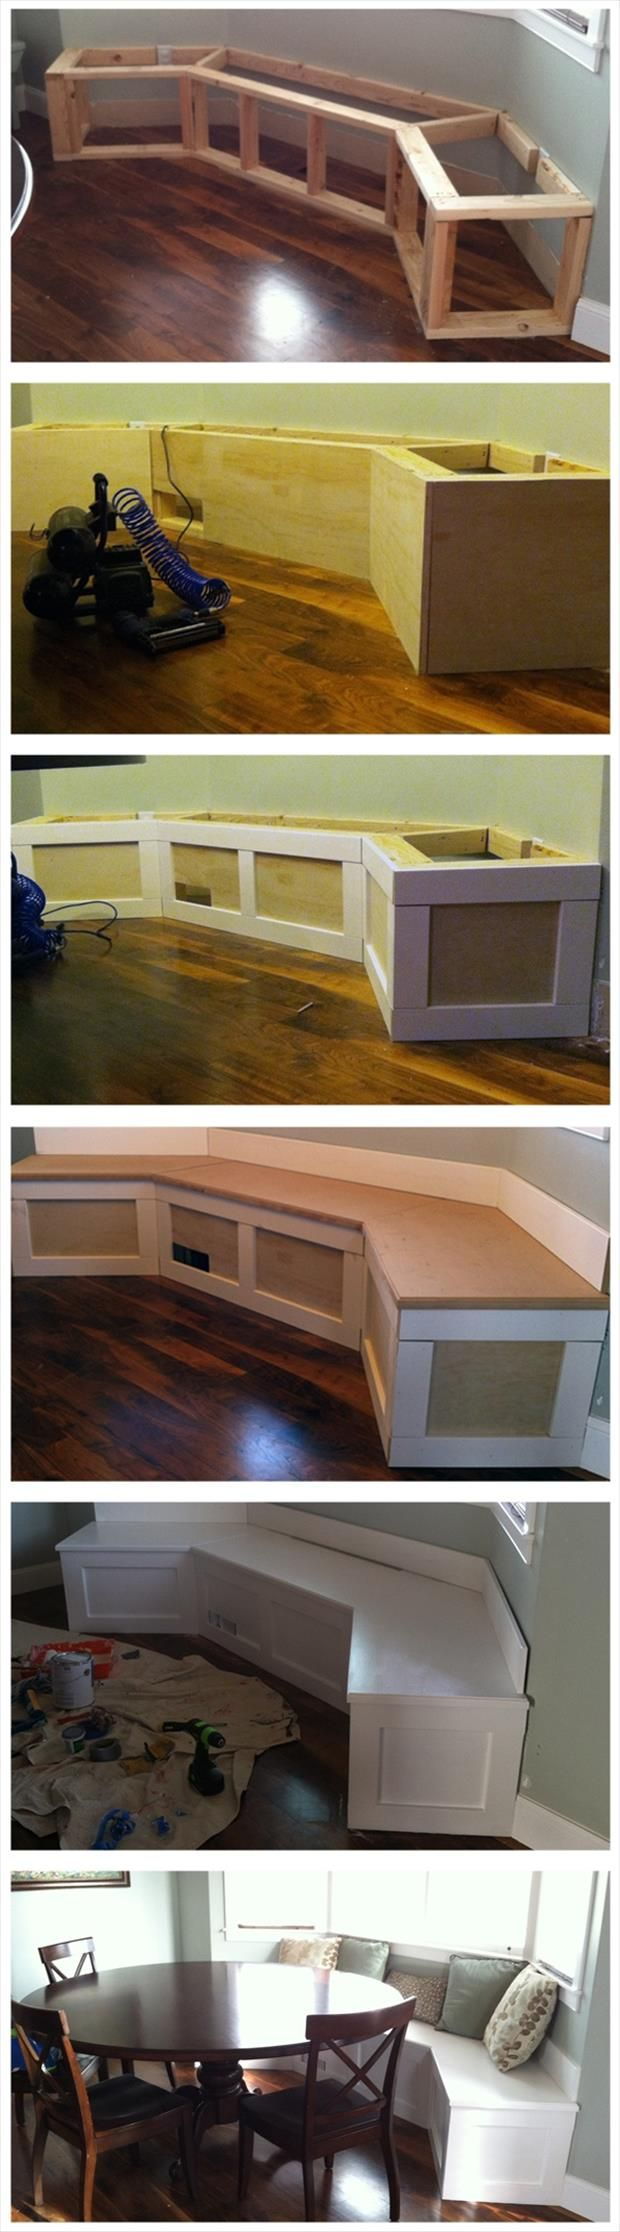 Step-by-step built-ins / vma.